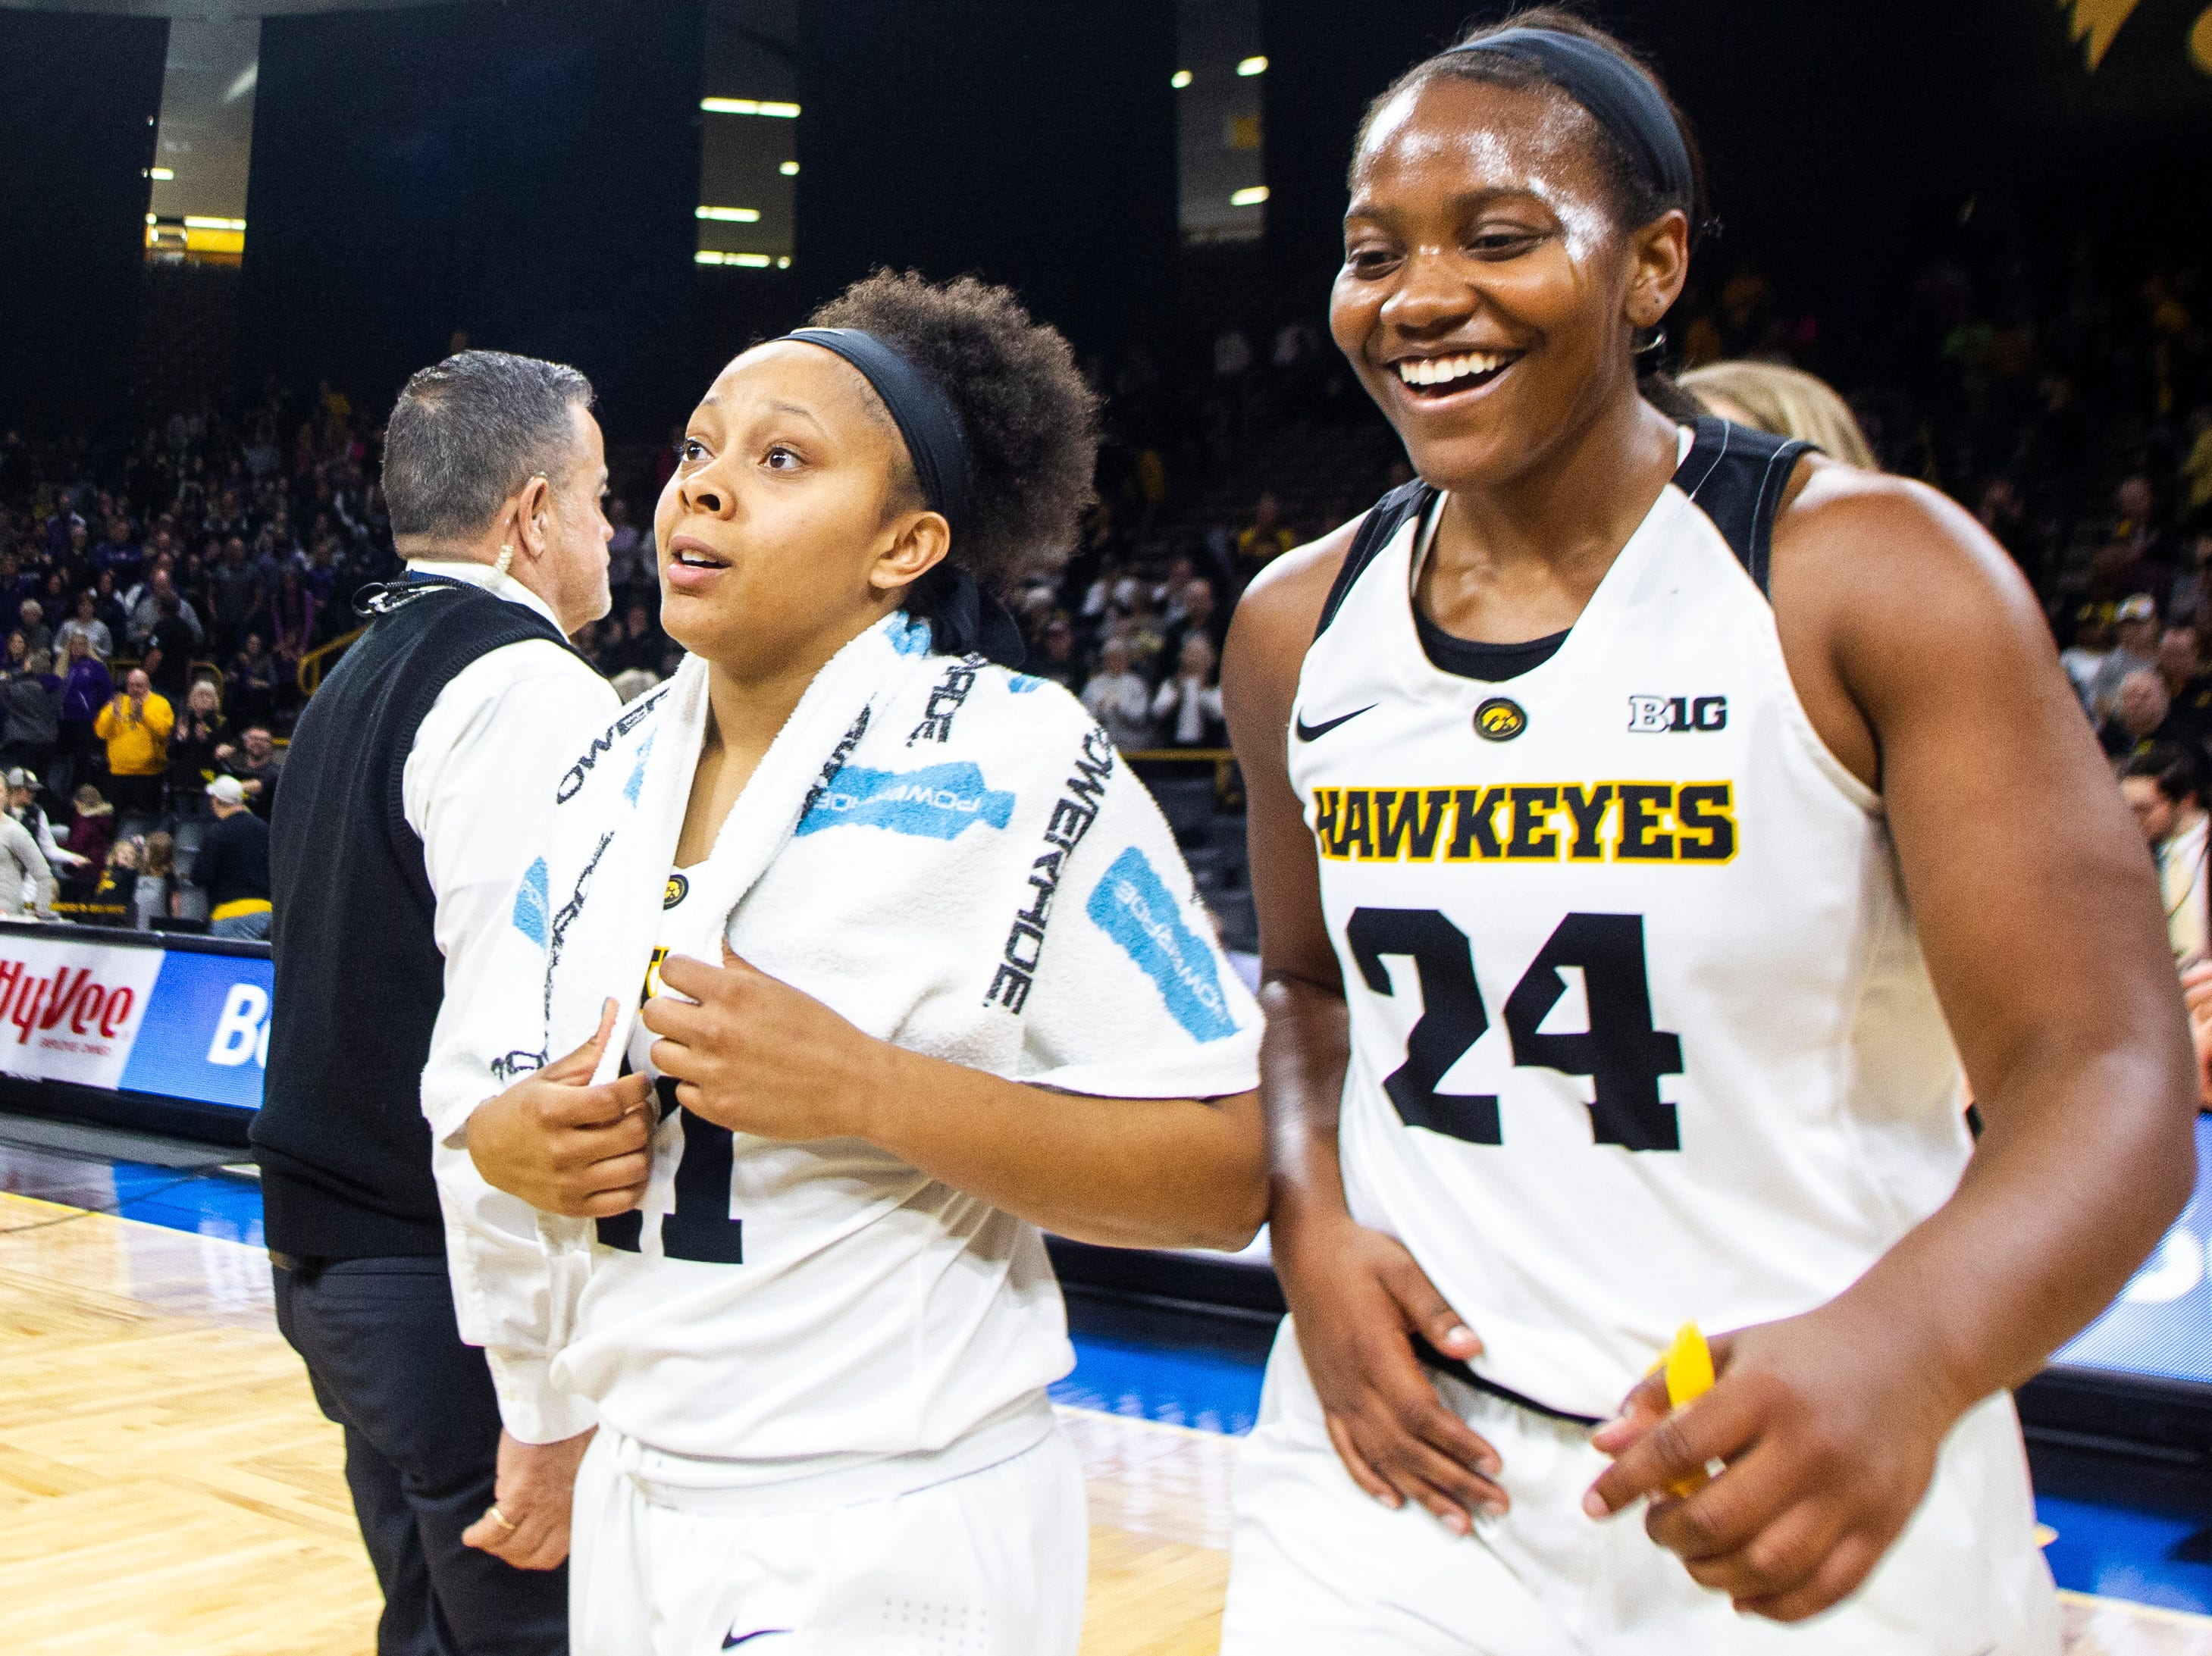 Iowa guard Tania Davis (11) and Iowa guard Zion Sanders (24) celebrate after a NCAA women's basketball game on Sunday, Dec. 16, 2018, at Carver-Hawkeye Arena in Iowa City.